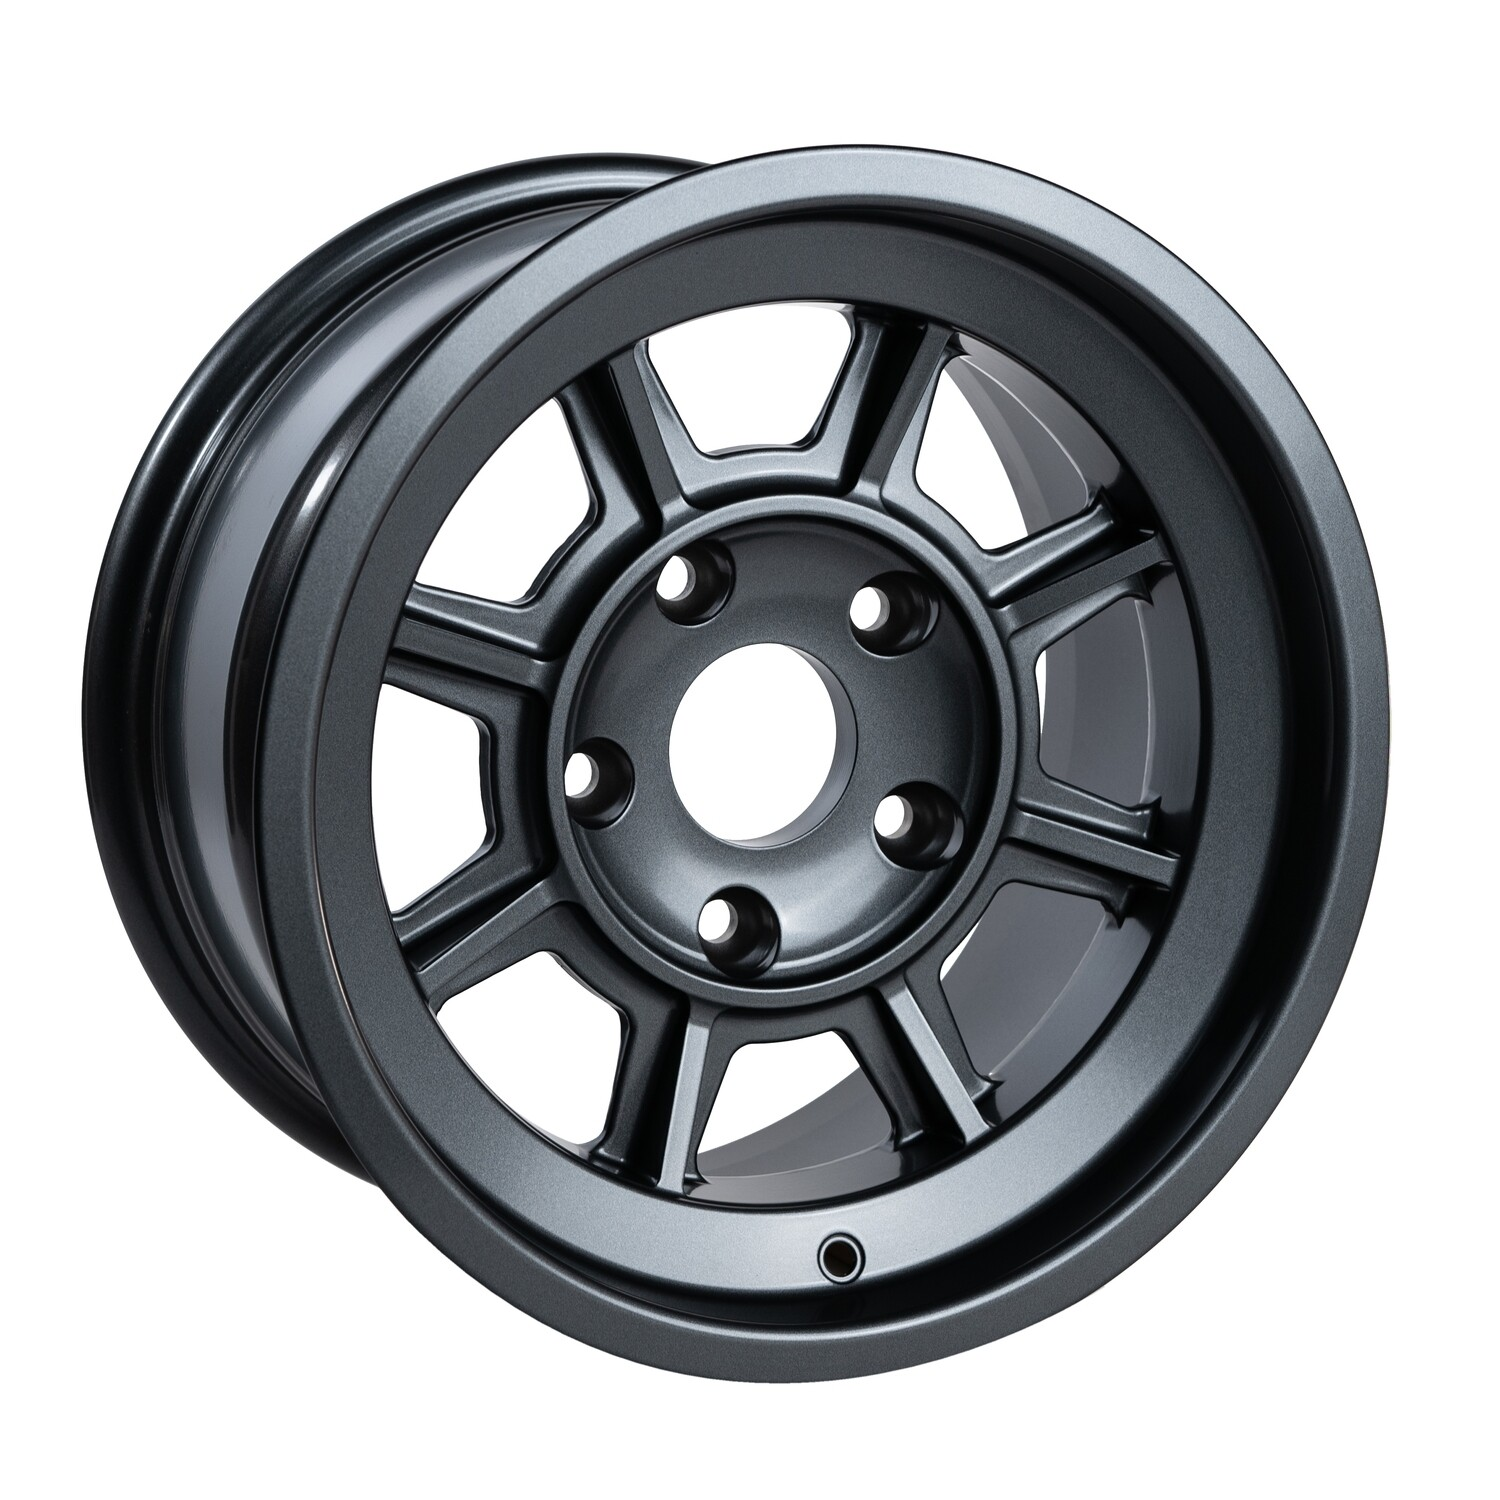 PAG1580P Satin Anthracite 15 x 8